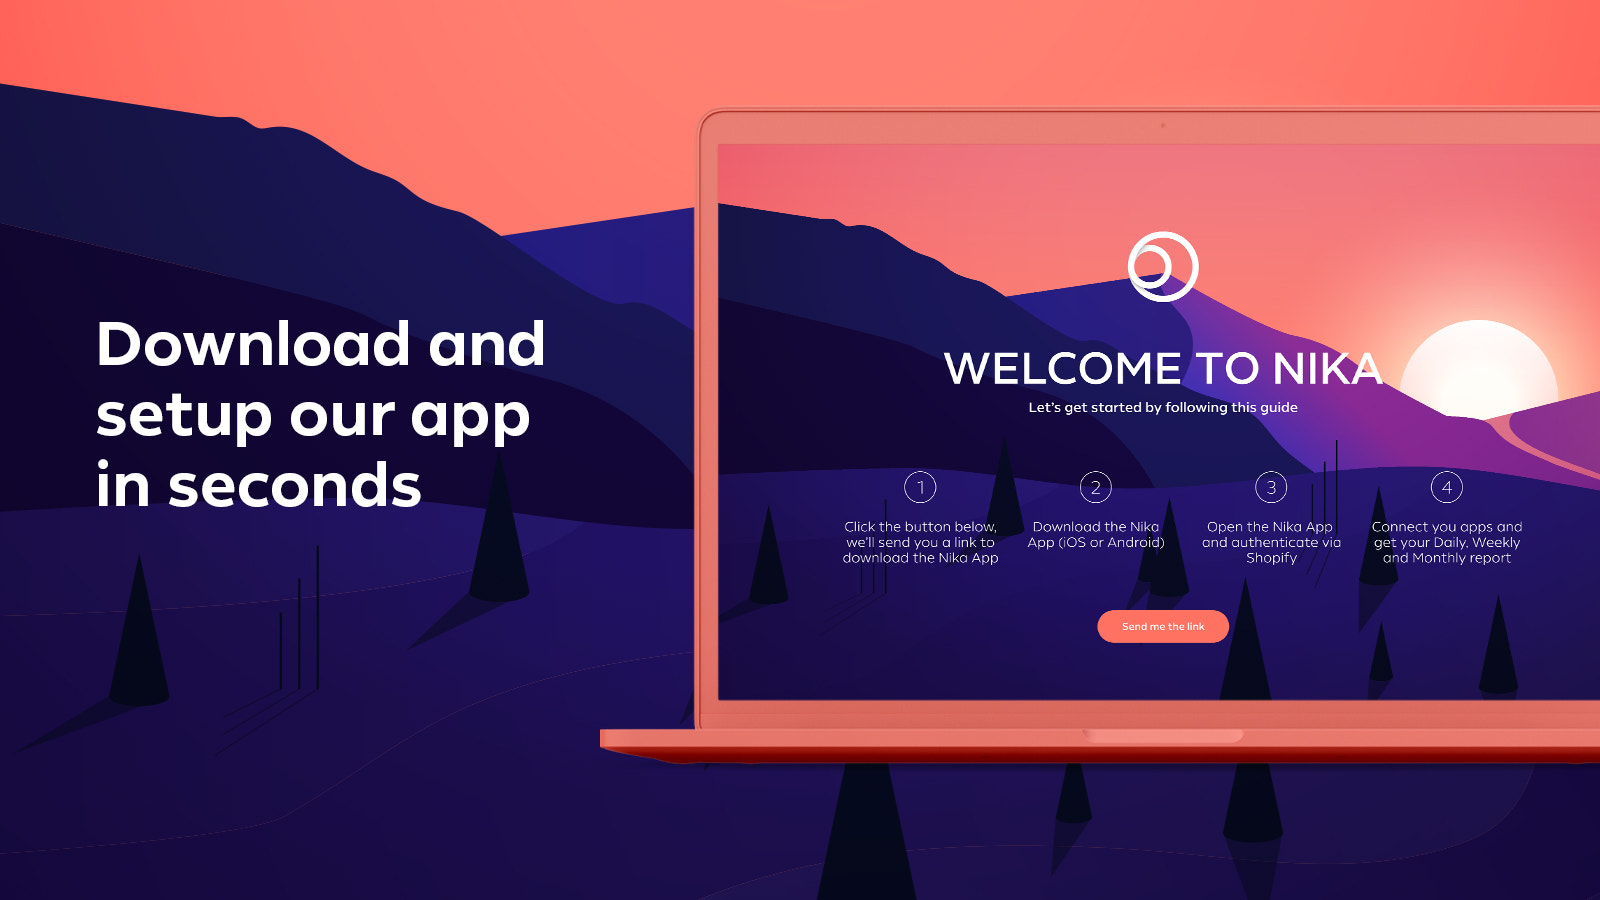 Download and setup our app in seconds